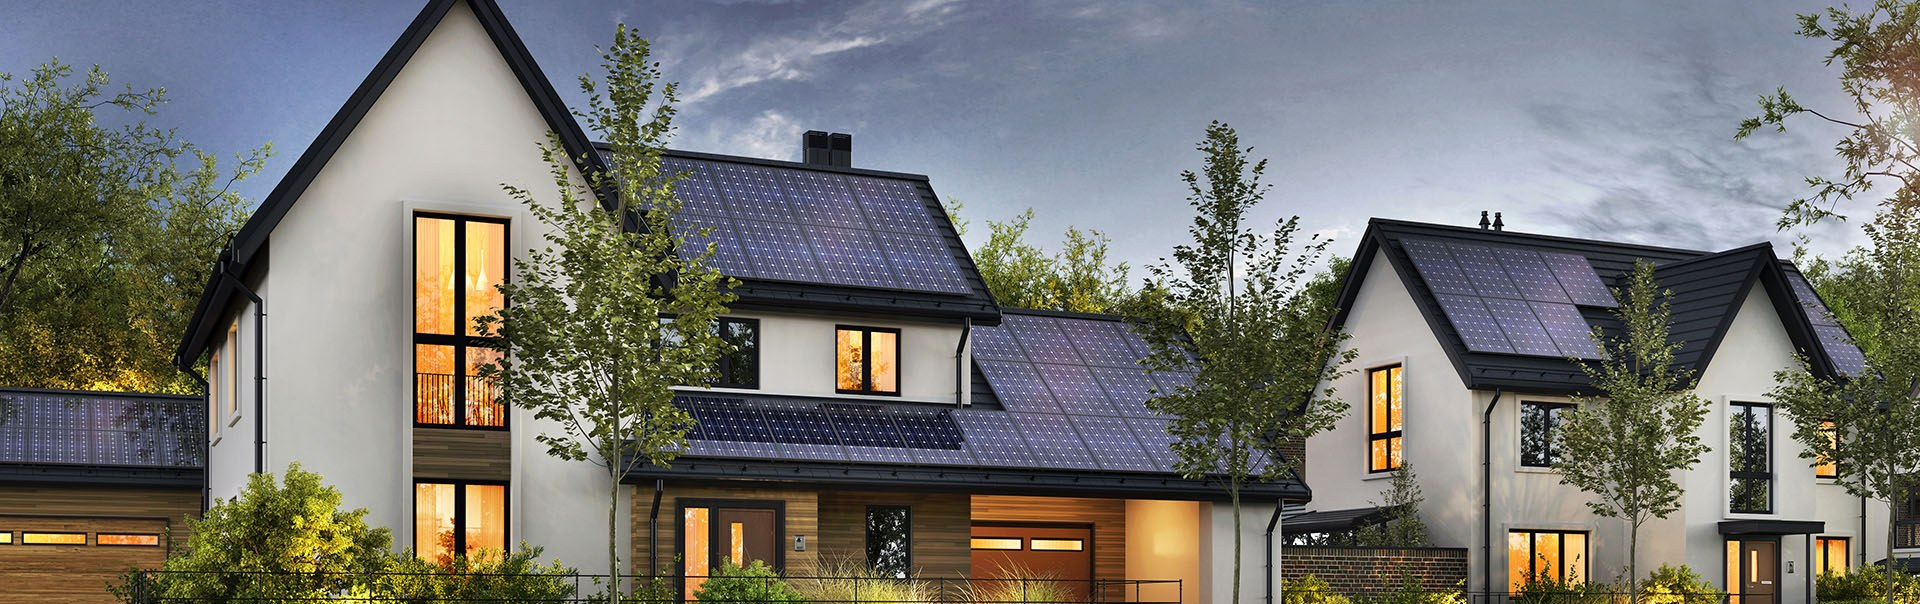 Background image of nice houses with solar panels